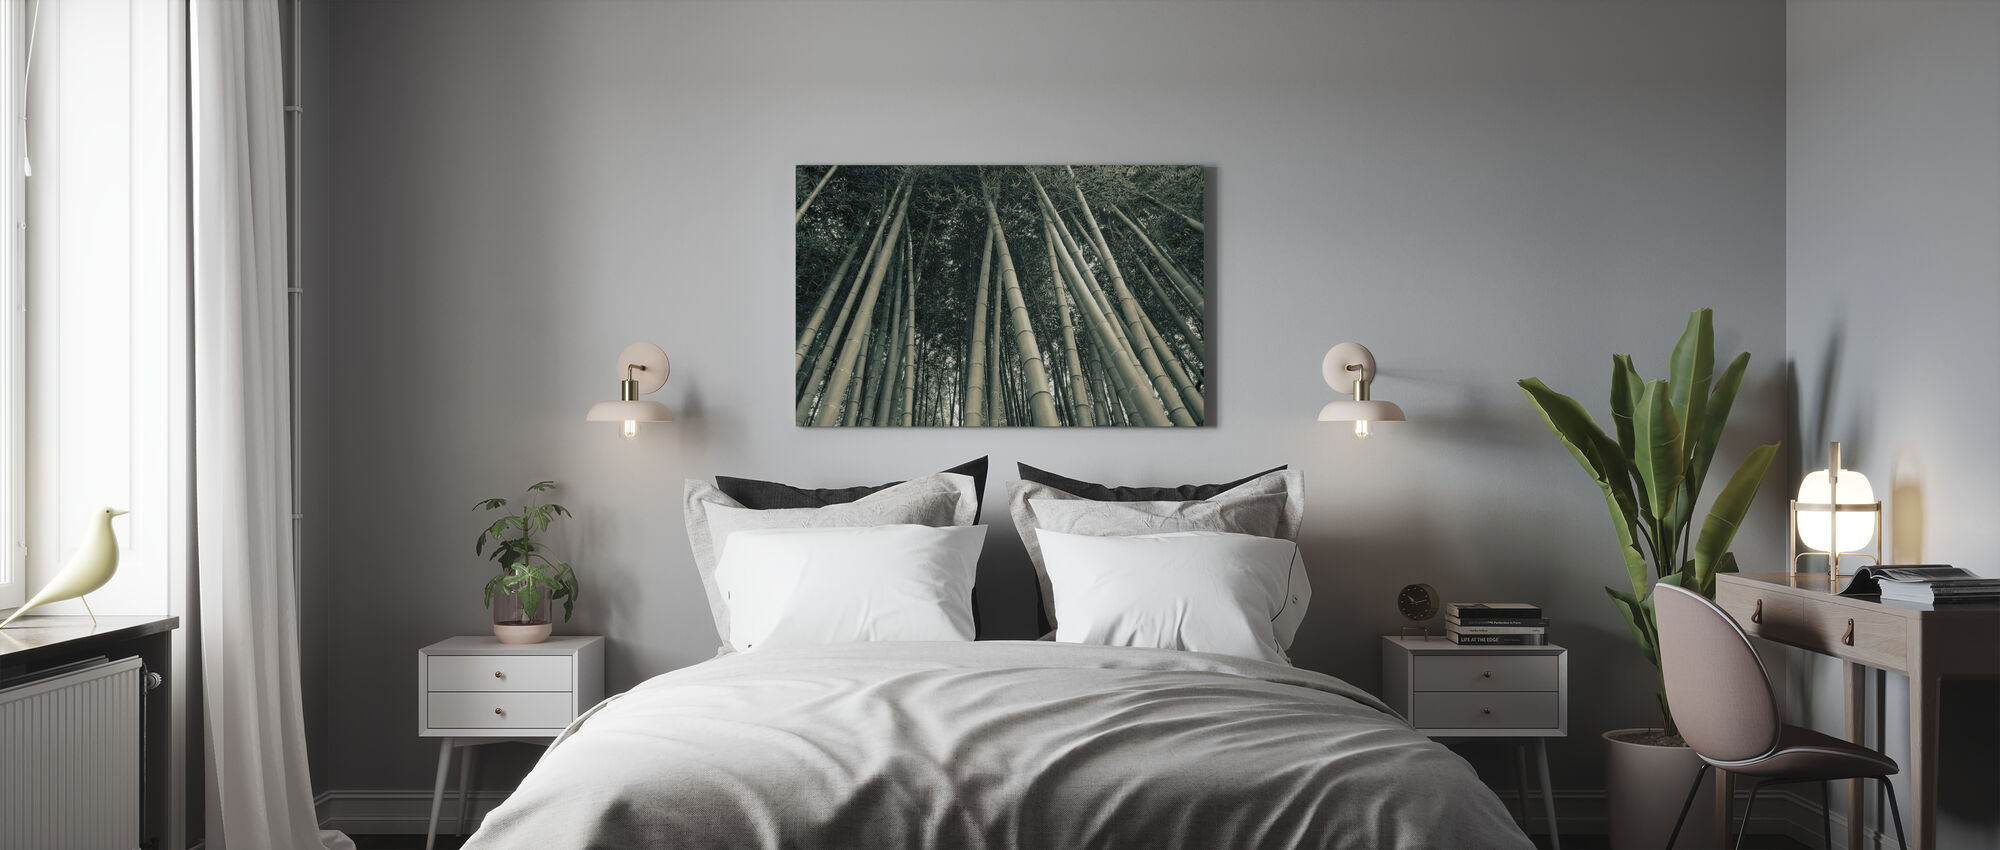 Bamboo Forest - Canvas print - Bedroom